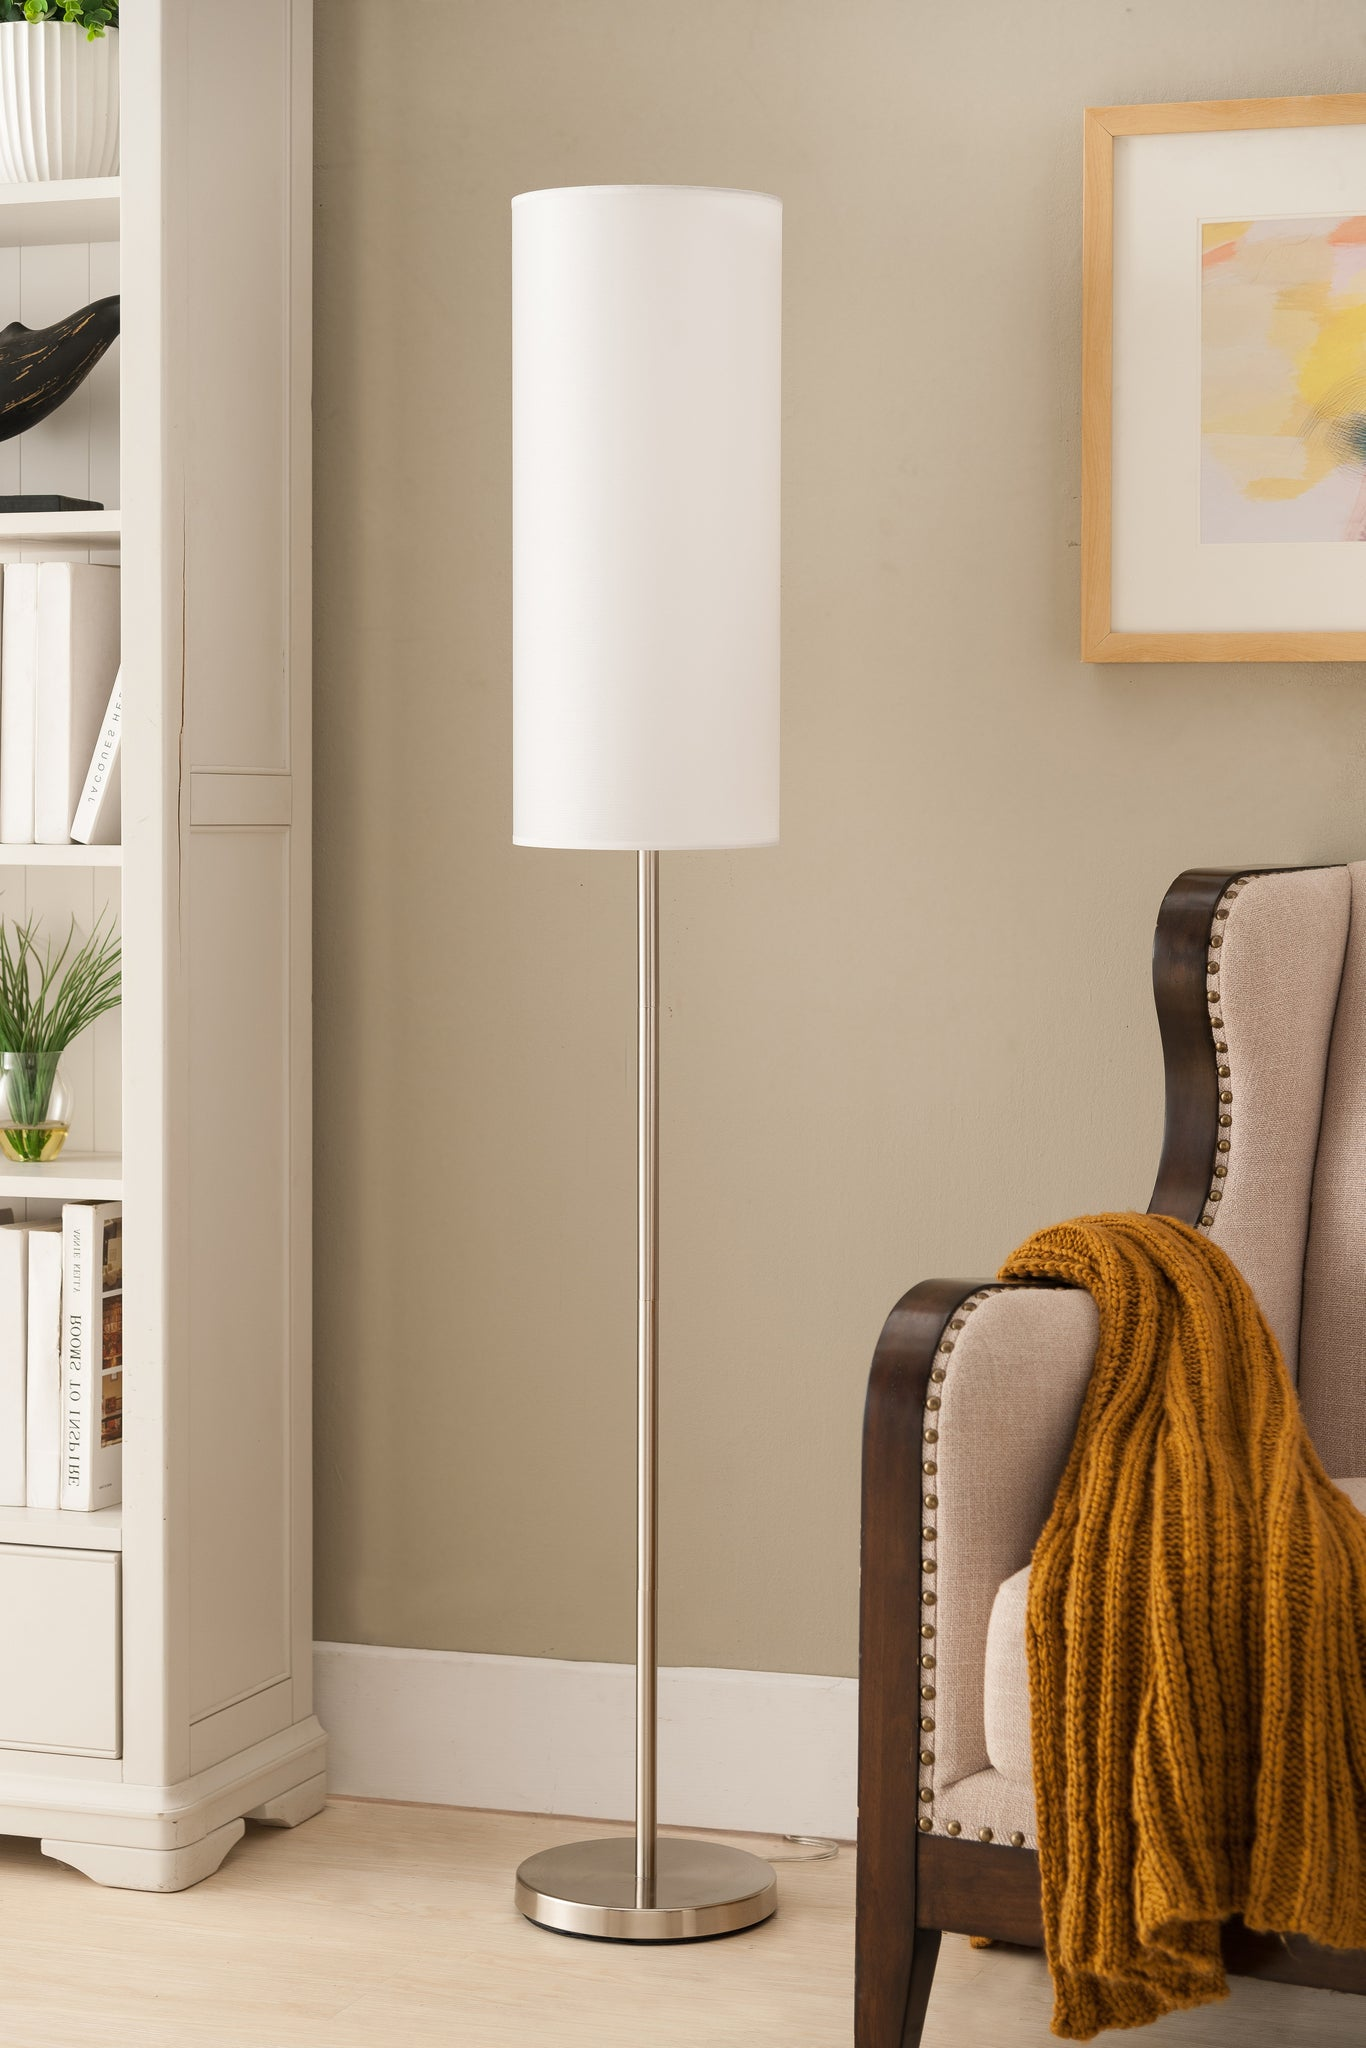 Brushed Nickel With White Fabric Shade Modern Floor Standing Lamp ...